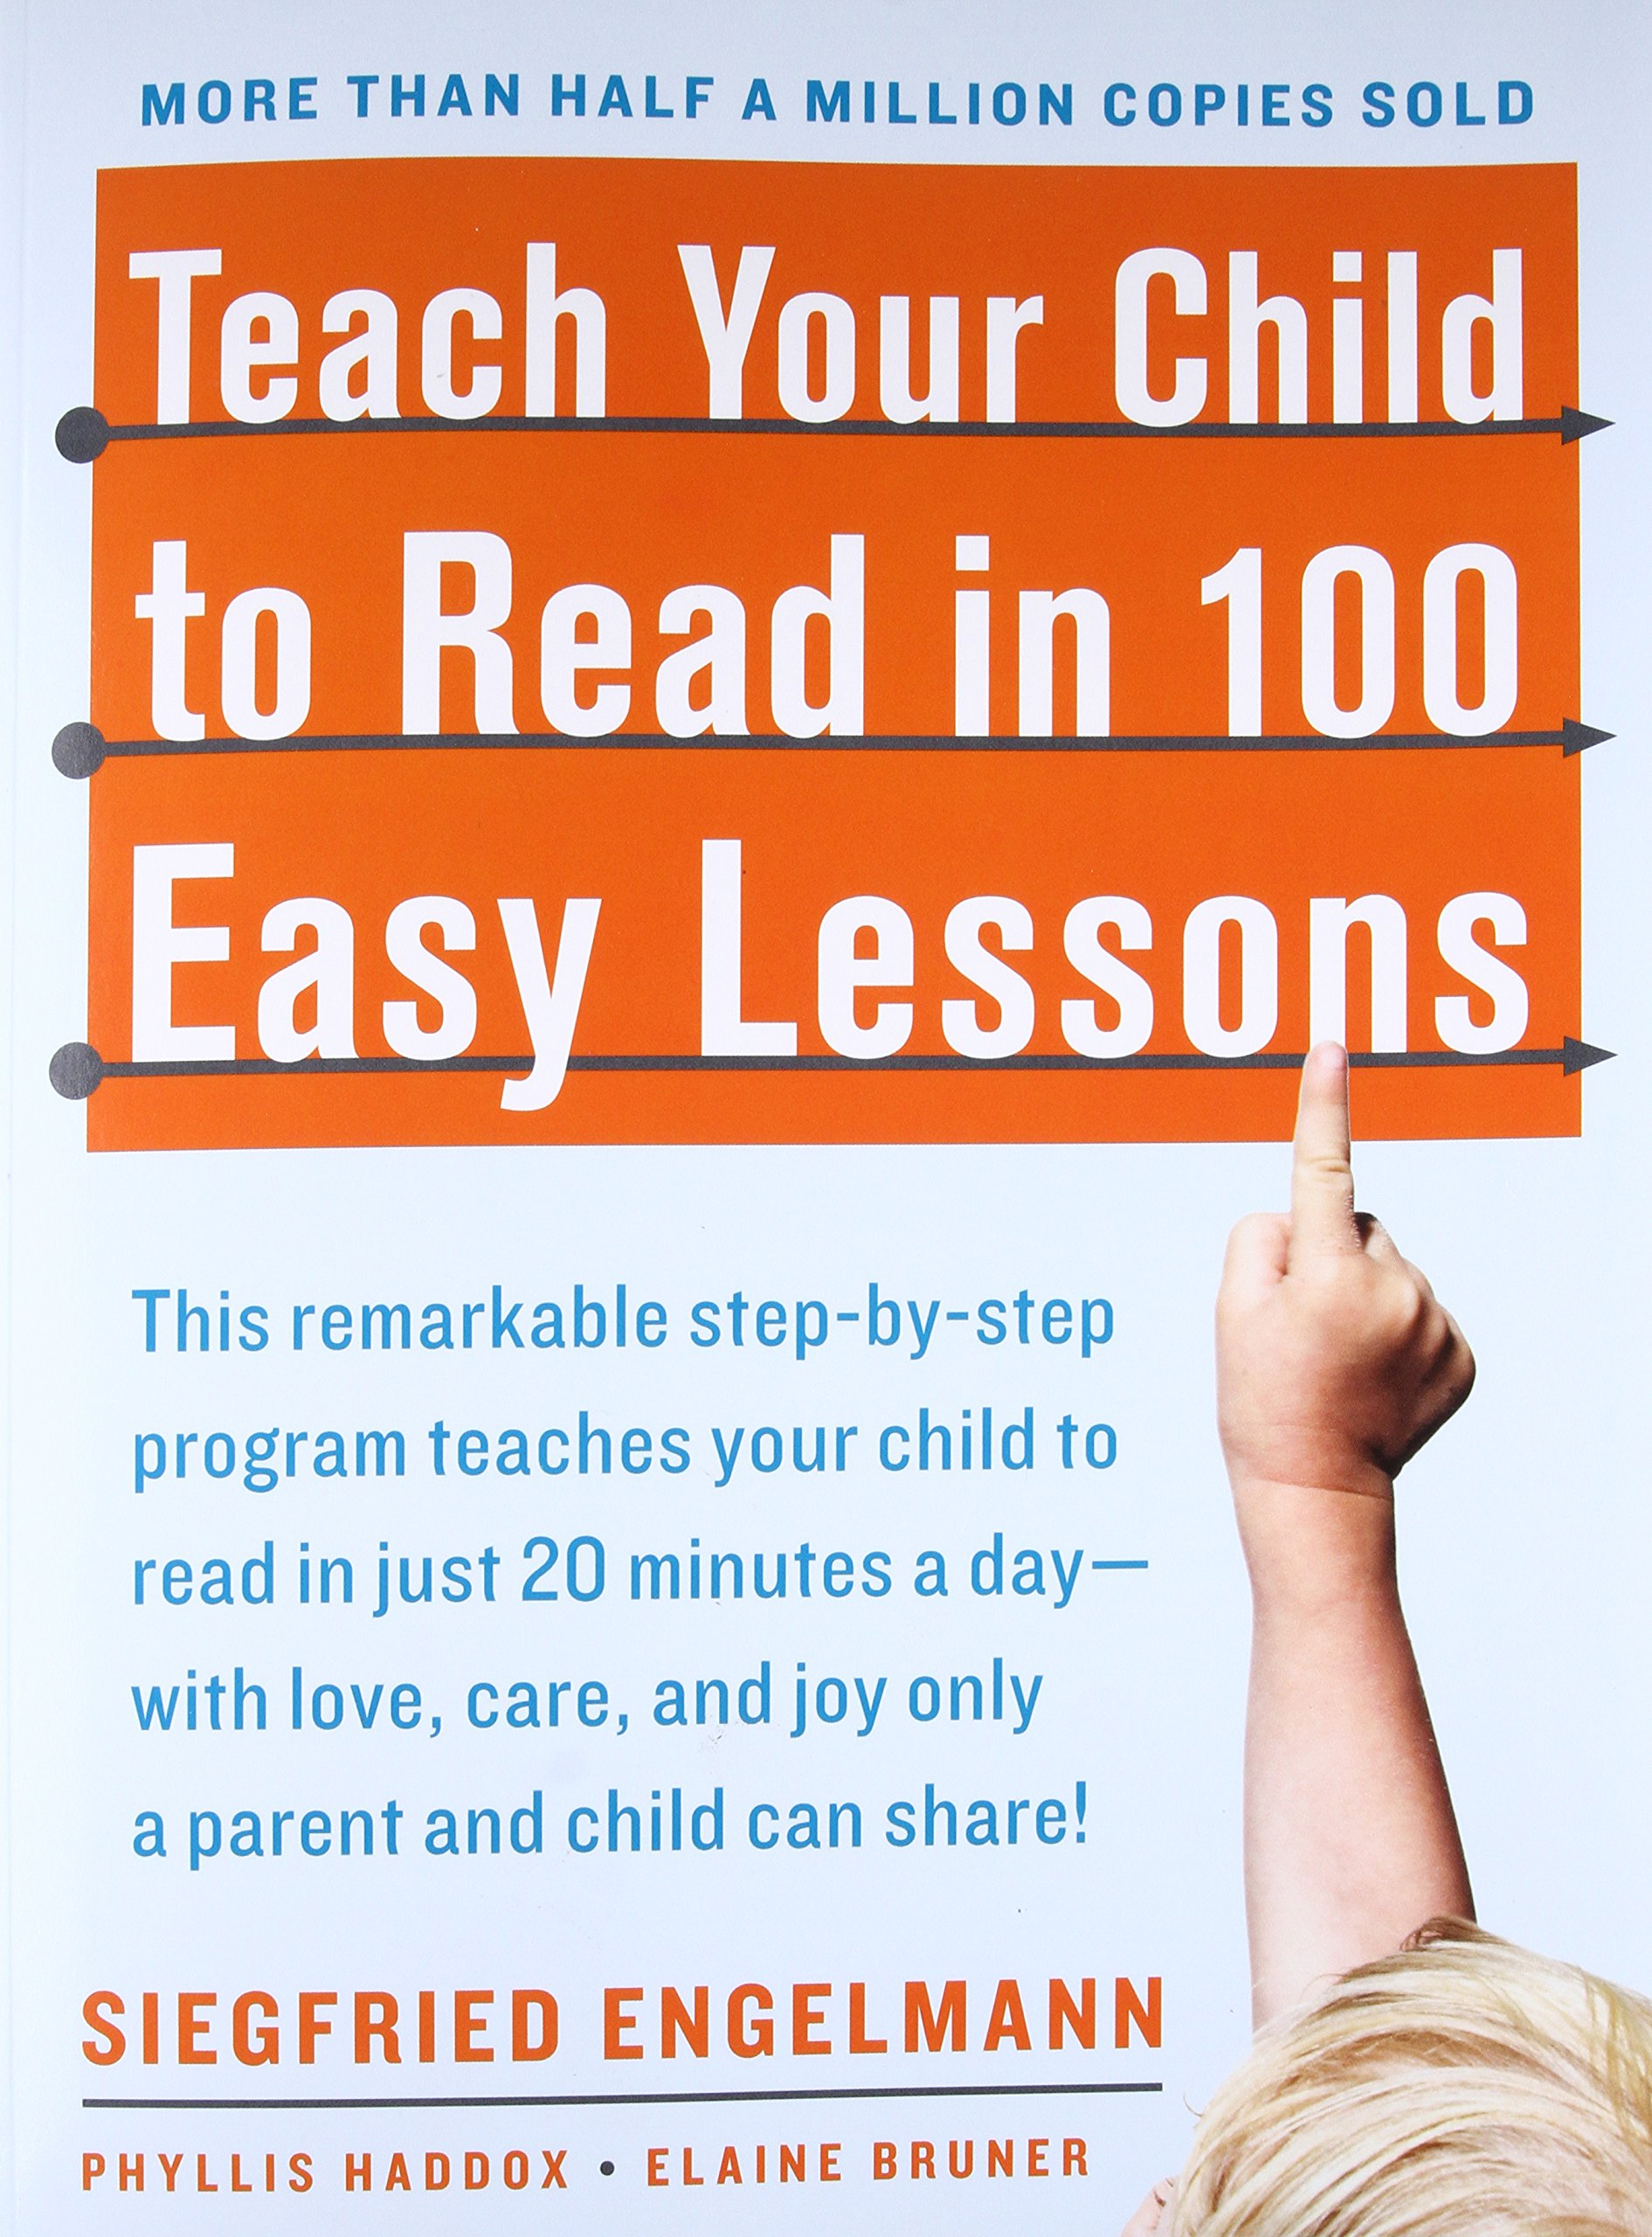 worksheet Teach Your Child To Read In 100 Easy Lessons Worksheets amazon com teach your child to read in 100 easy lessons 8601300365237 siegfried engelmann phyllis haddox elaine bruner books